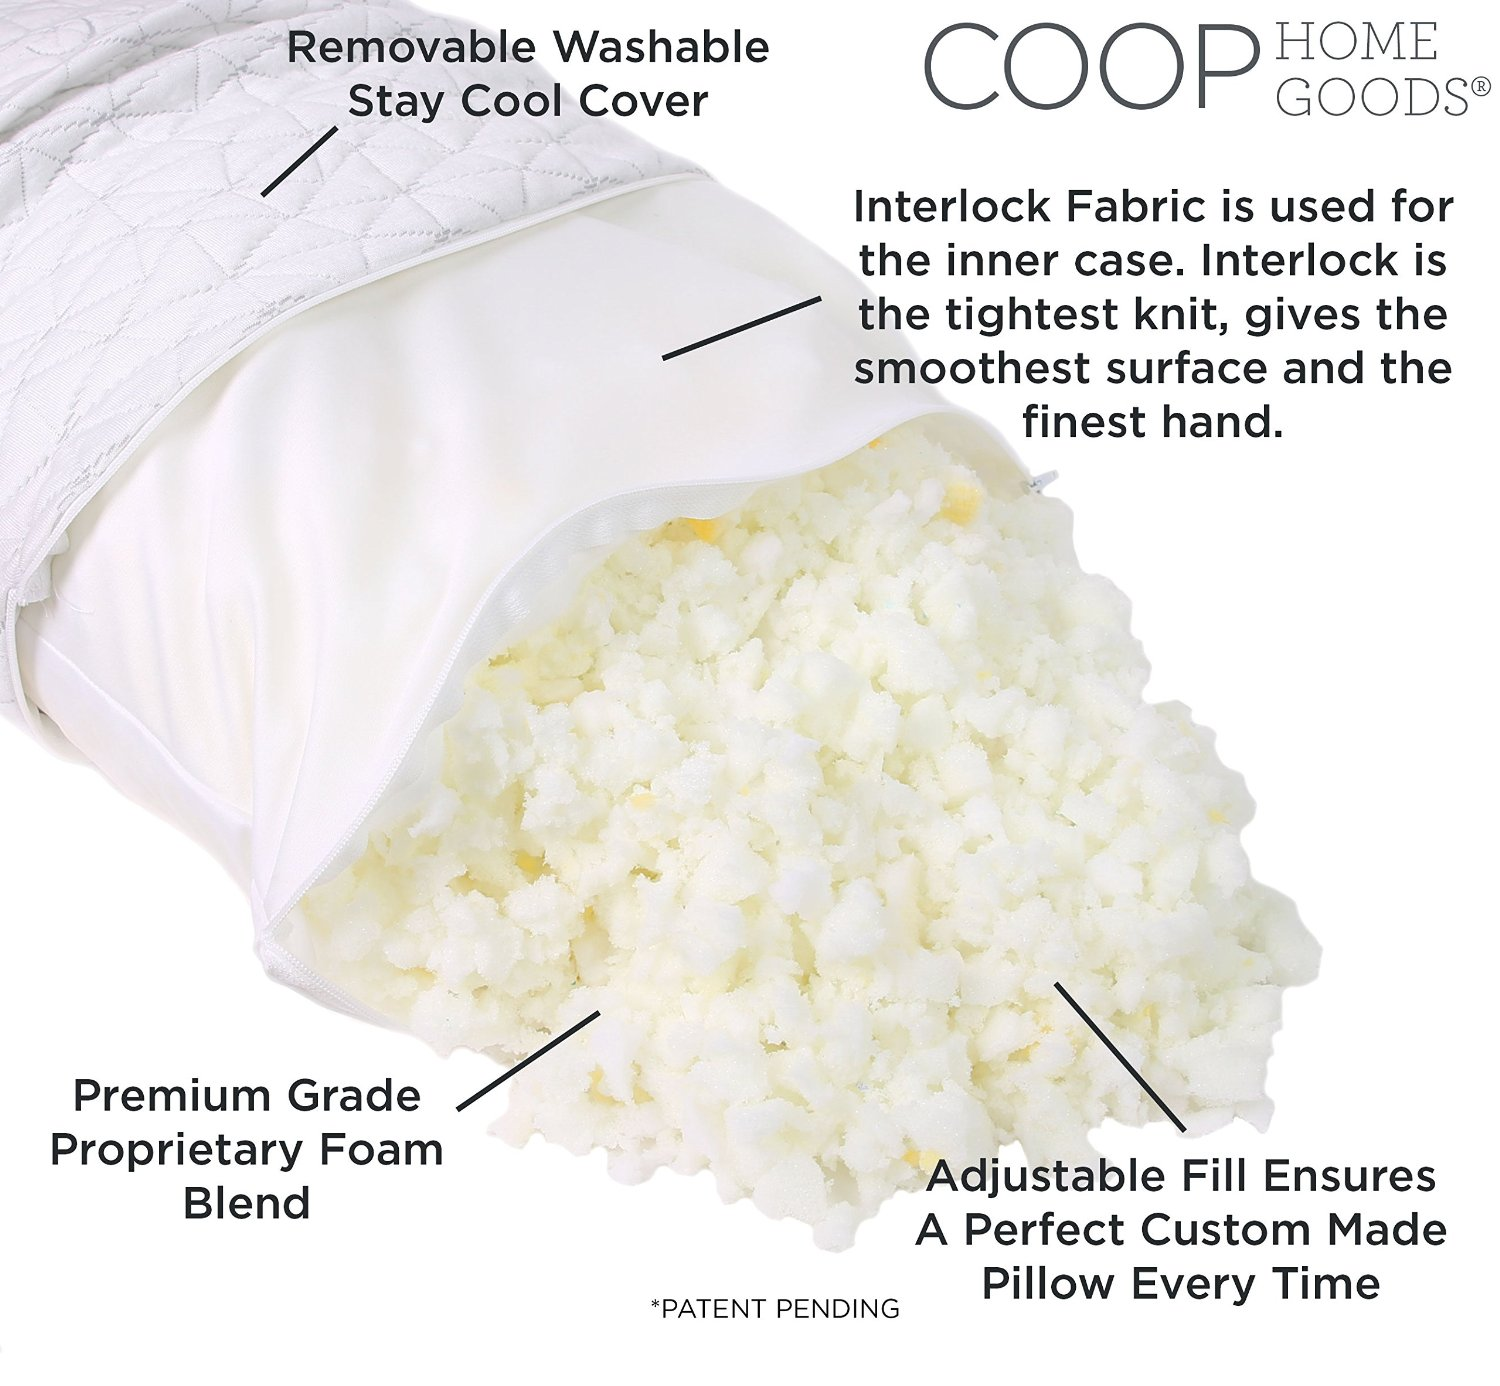 coop home goods pillow Amazing Adjustable Coop Home Goods Bamboo Pillow – Best Pillows  coop home goods pillow